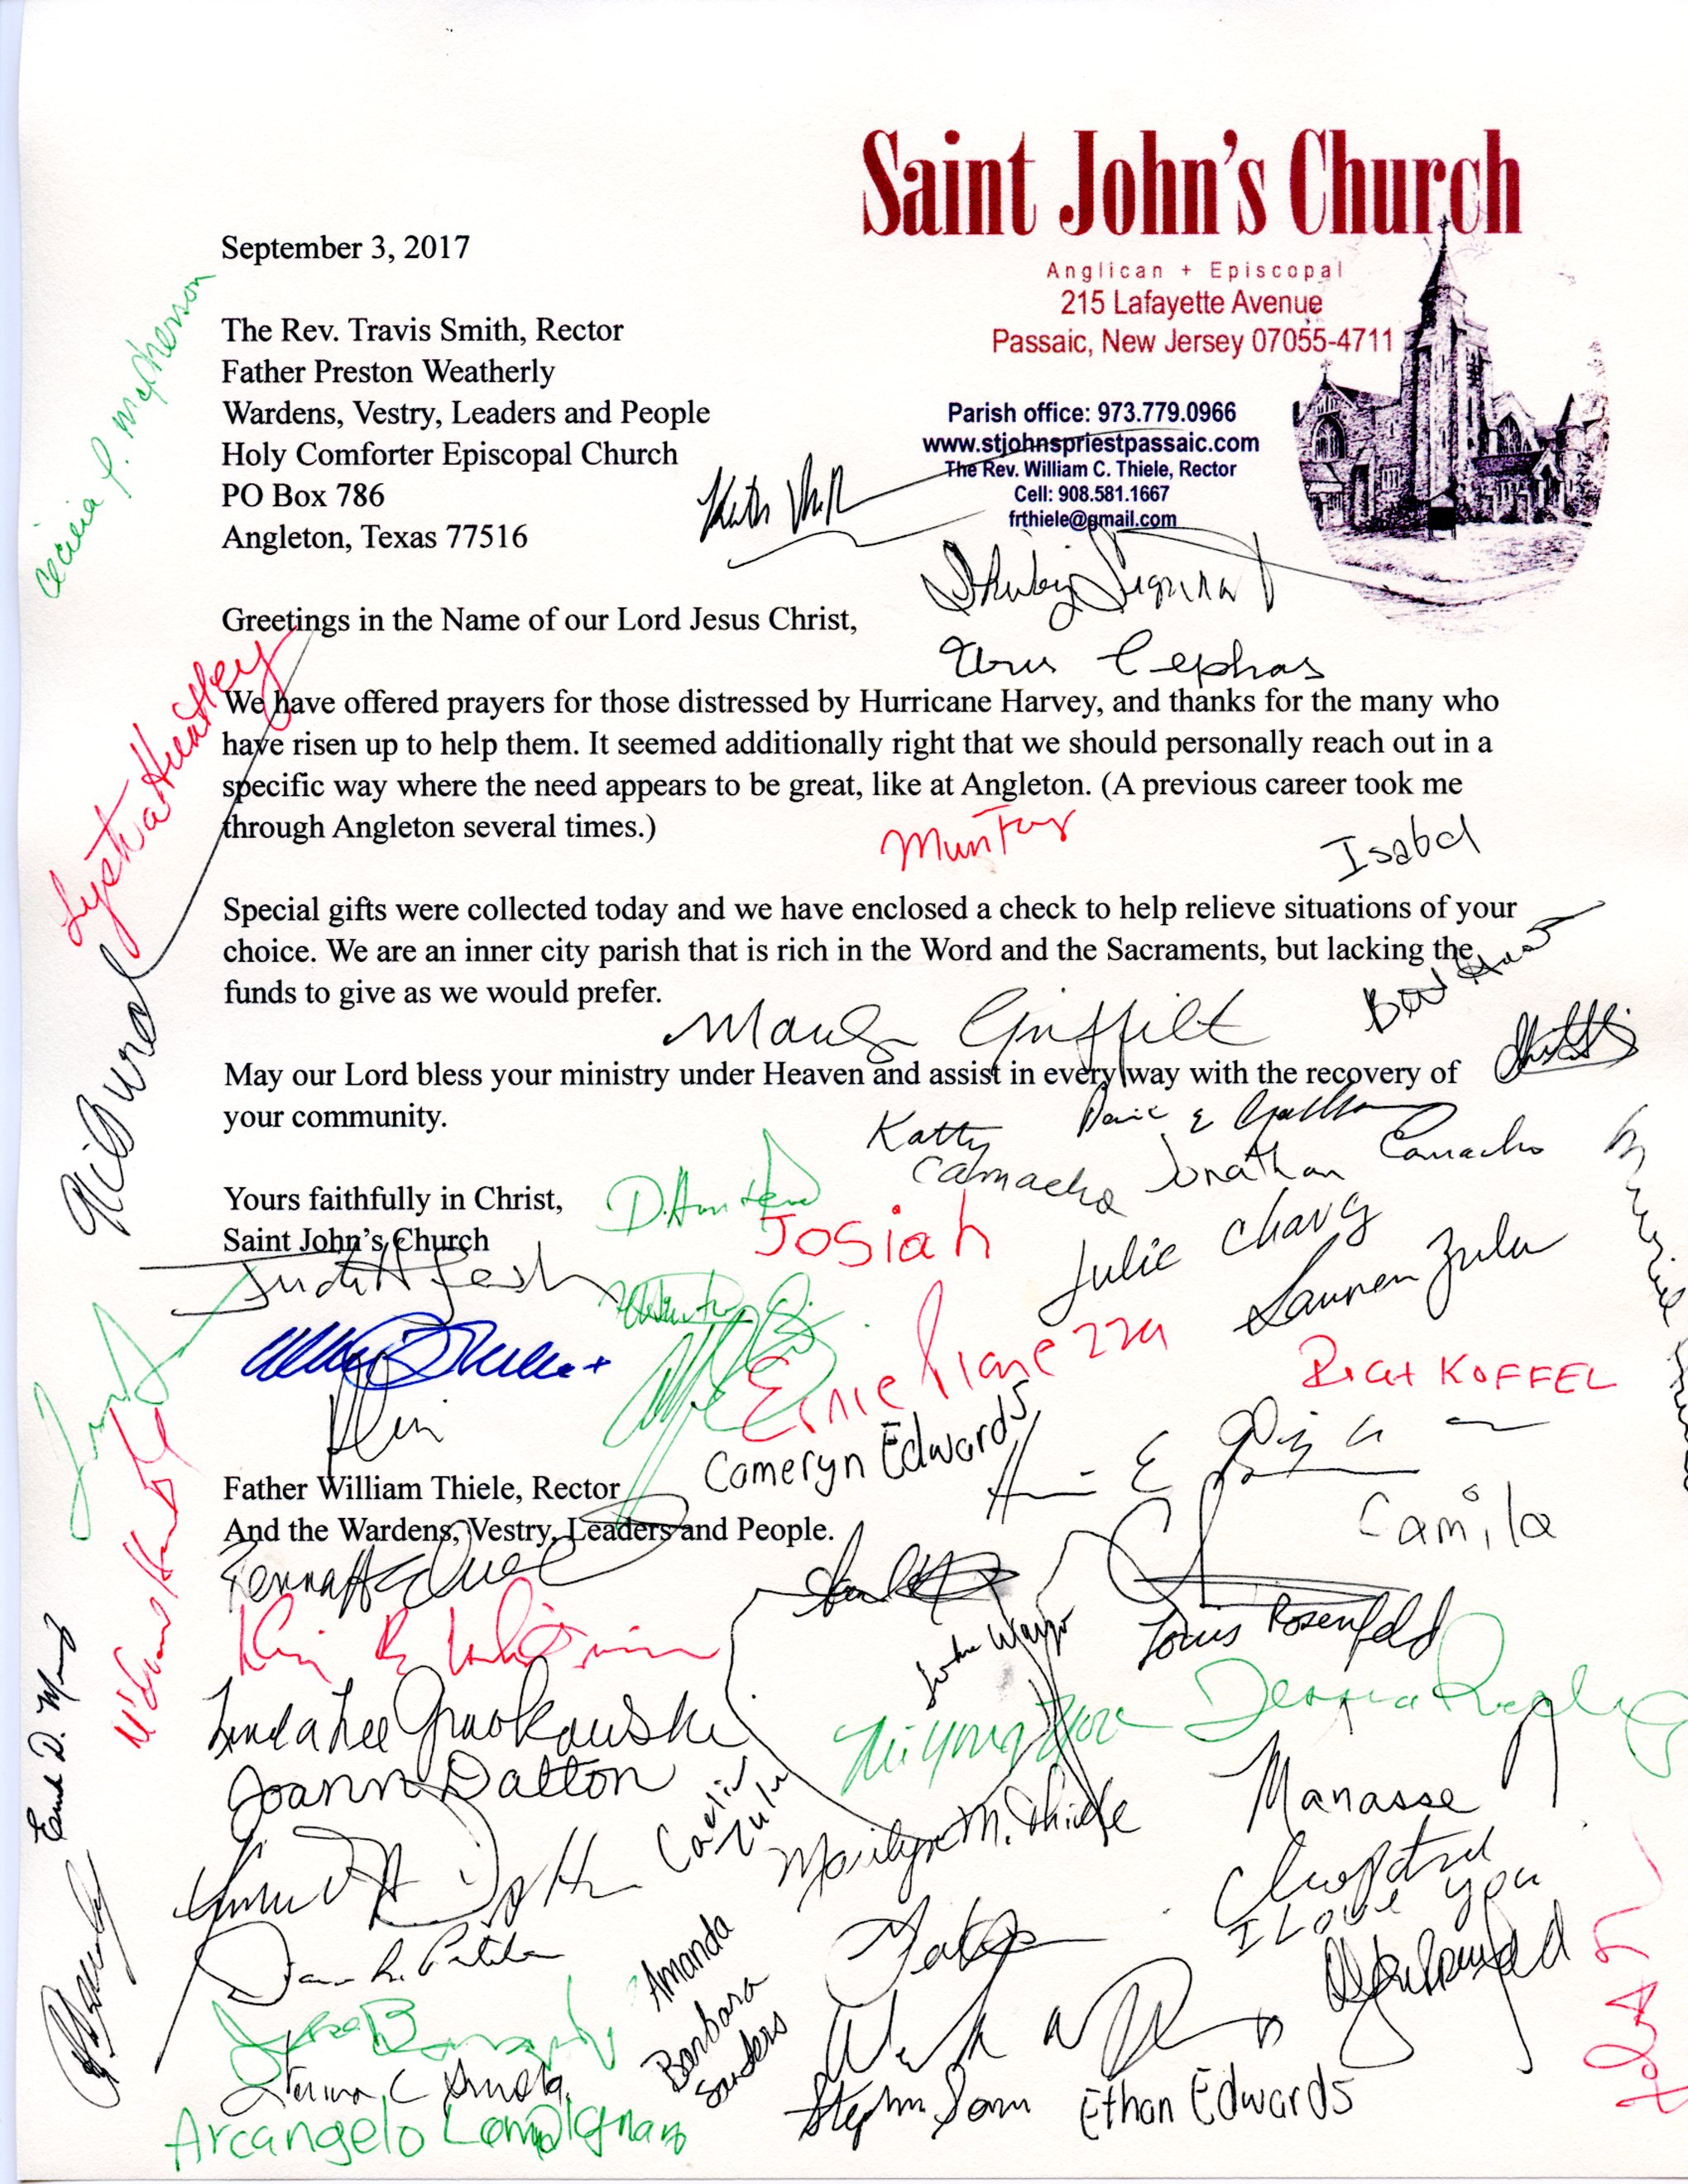 Letter from St. John's Passaic signed by about 60 members.